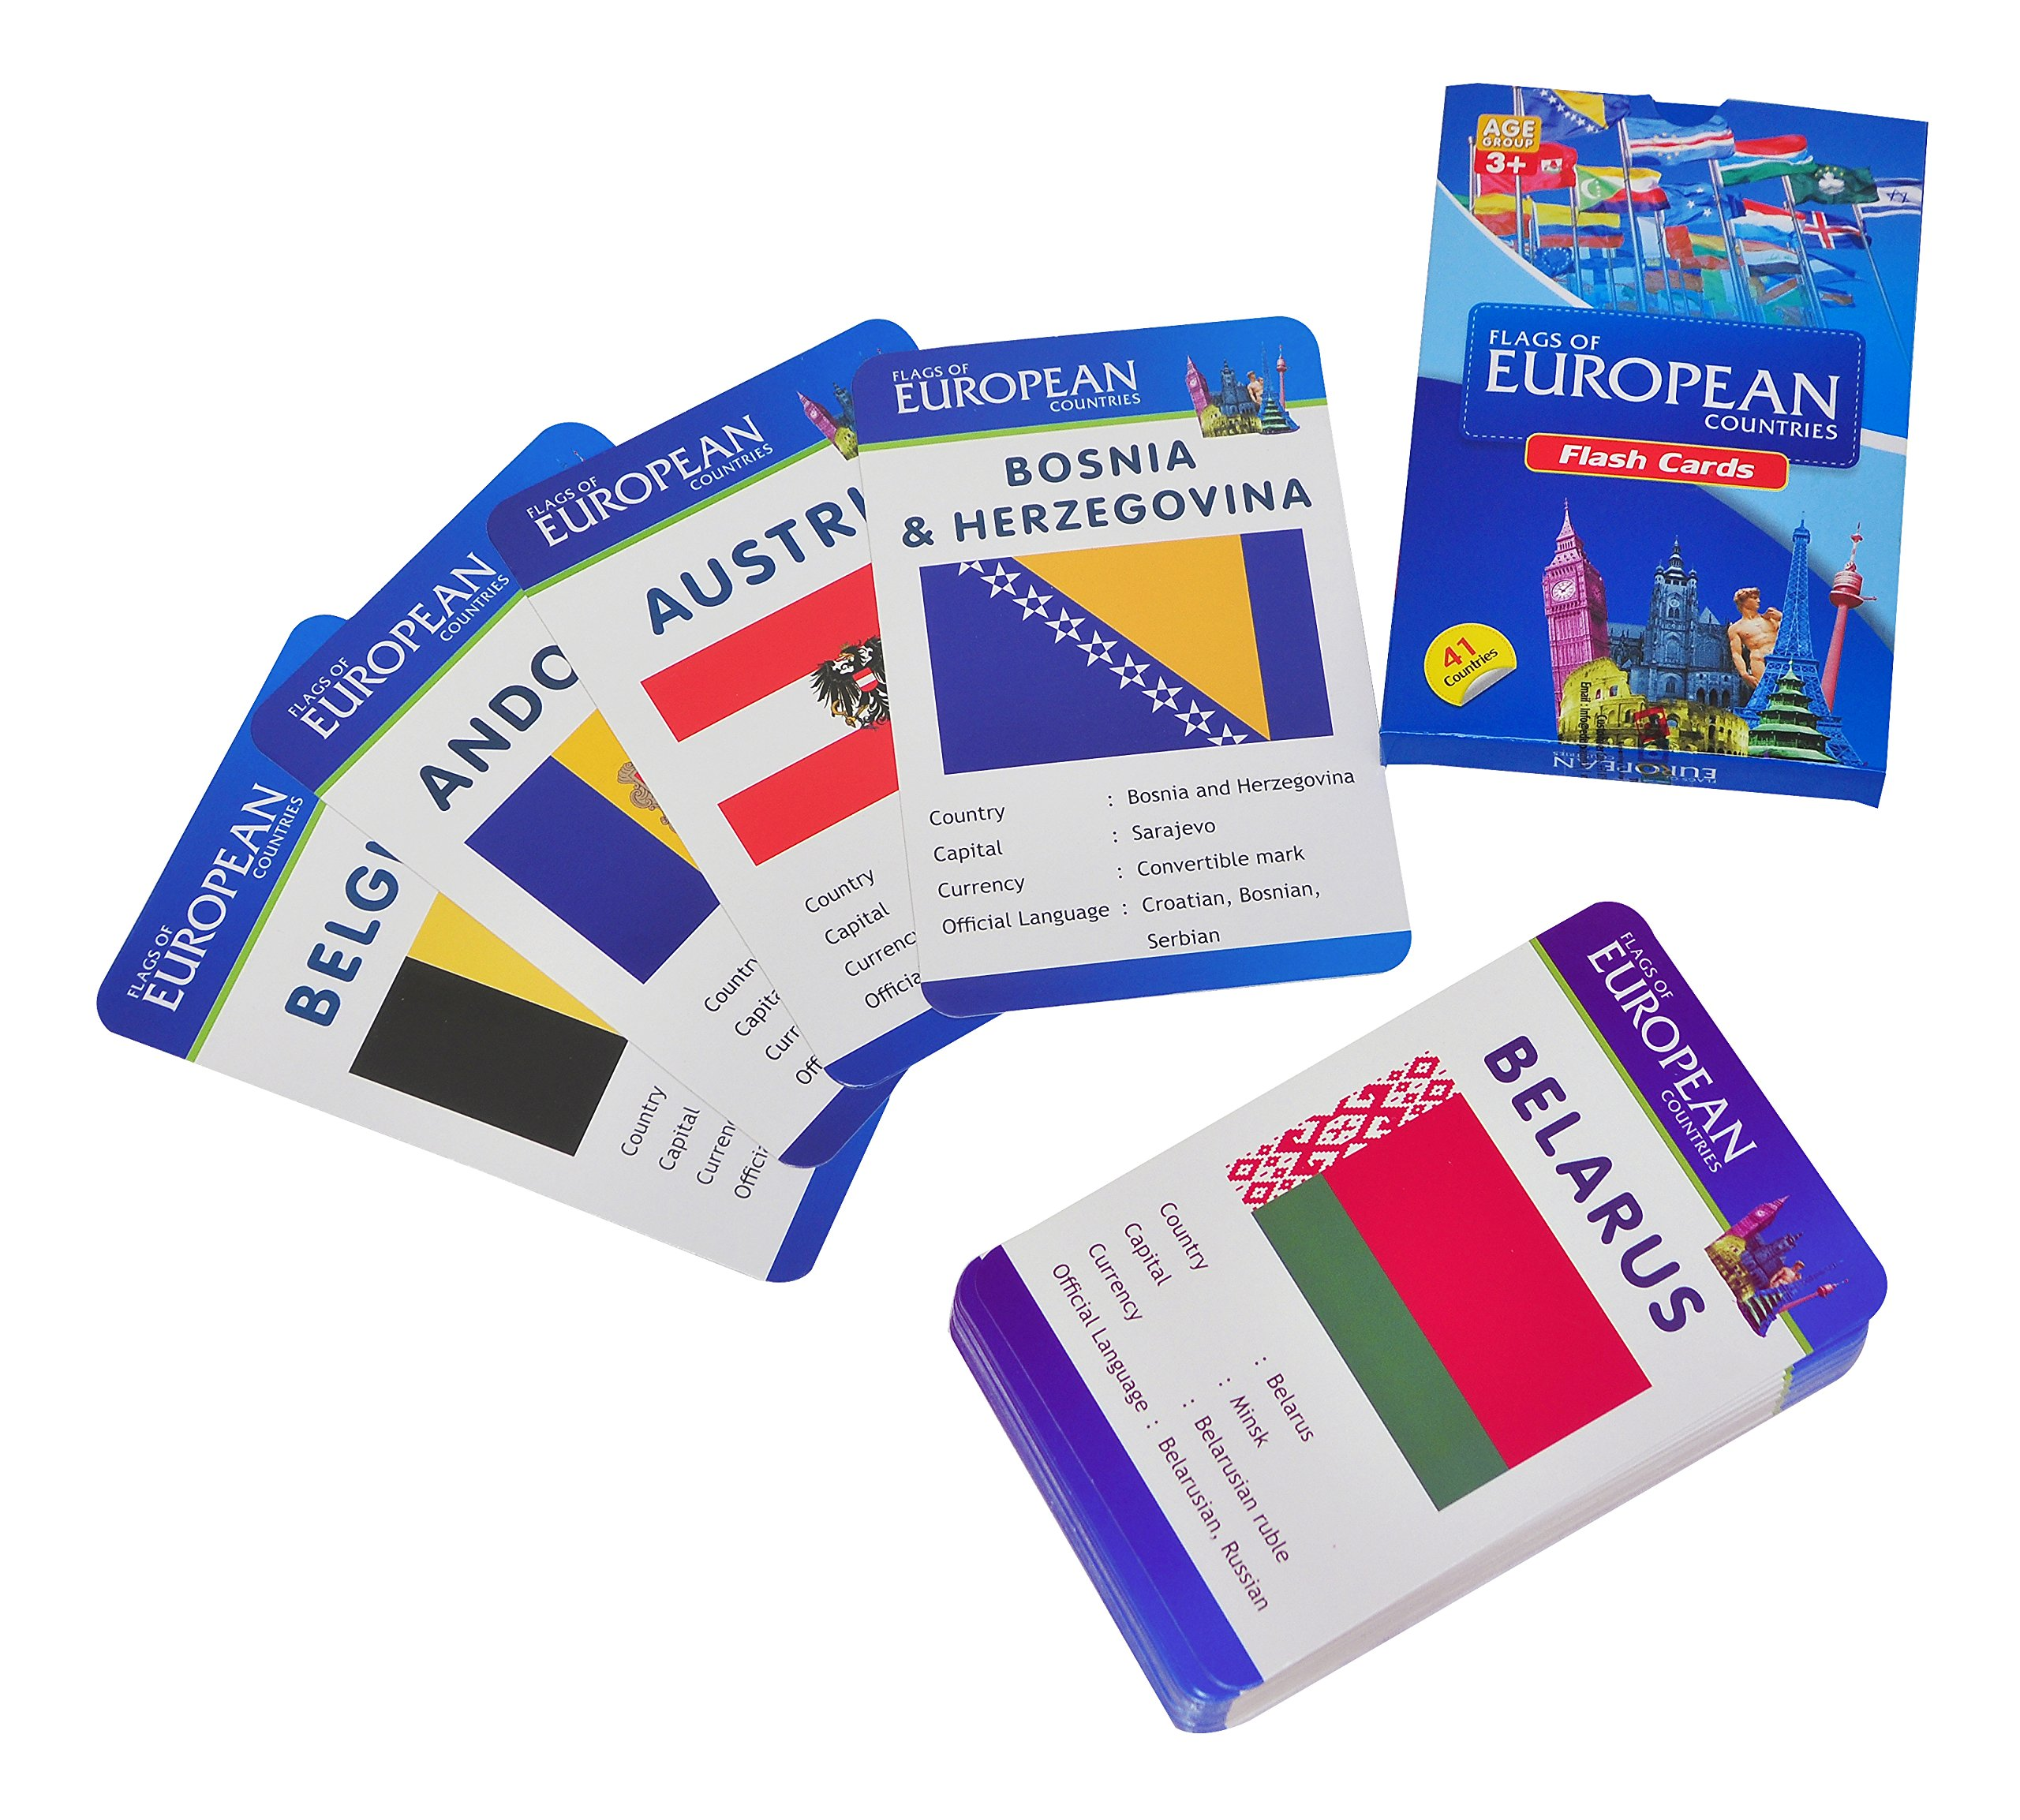 Baski Toys Flags of European Countries - Flash Cards (10 cm x 15 cm x 1.5 cm) product image